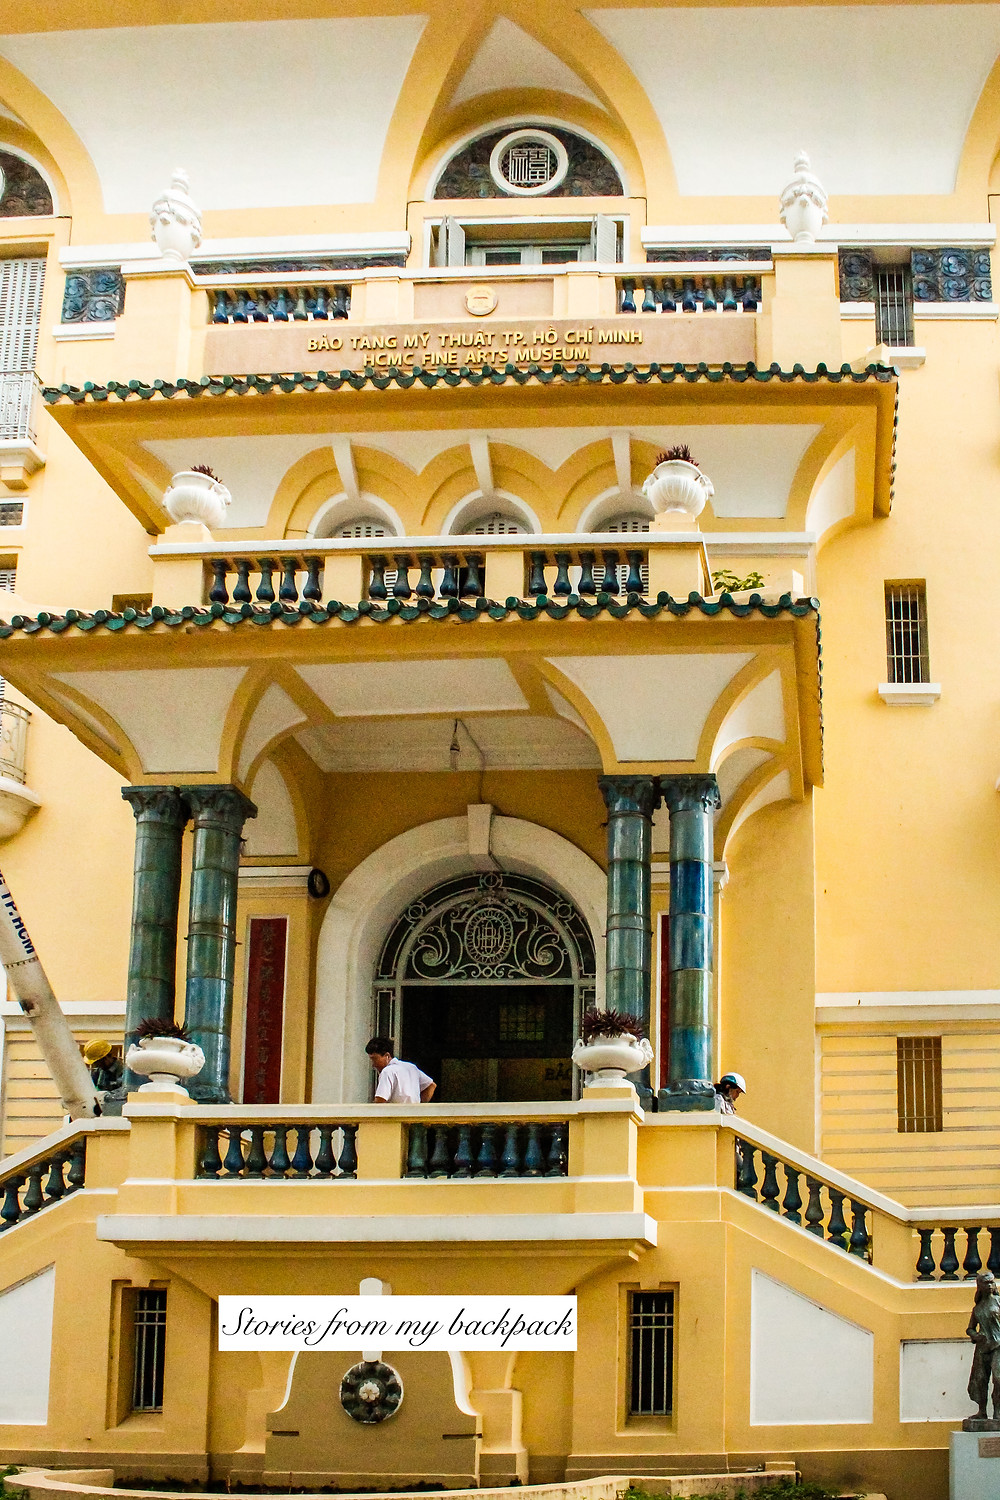 Ho Chi Minh City Fine Arts Museum, things to do in ho Chi Minh city, sightseeing in ho Chi Minh city, best experiences in ho Chi Minh city, Saigon, highlights of ho Chi Minh city